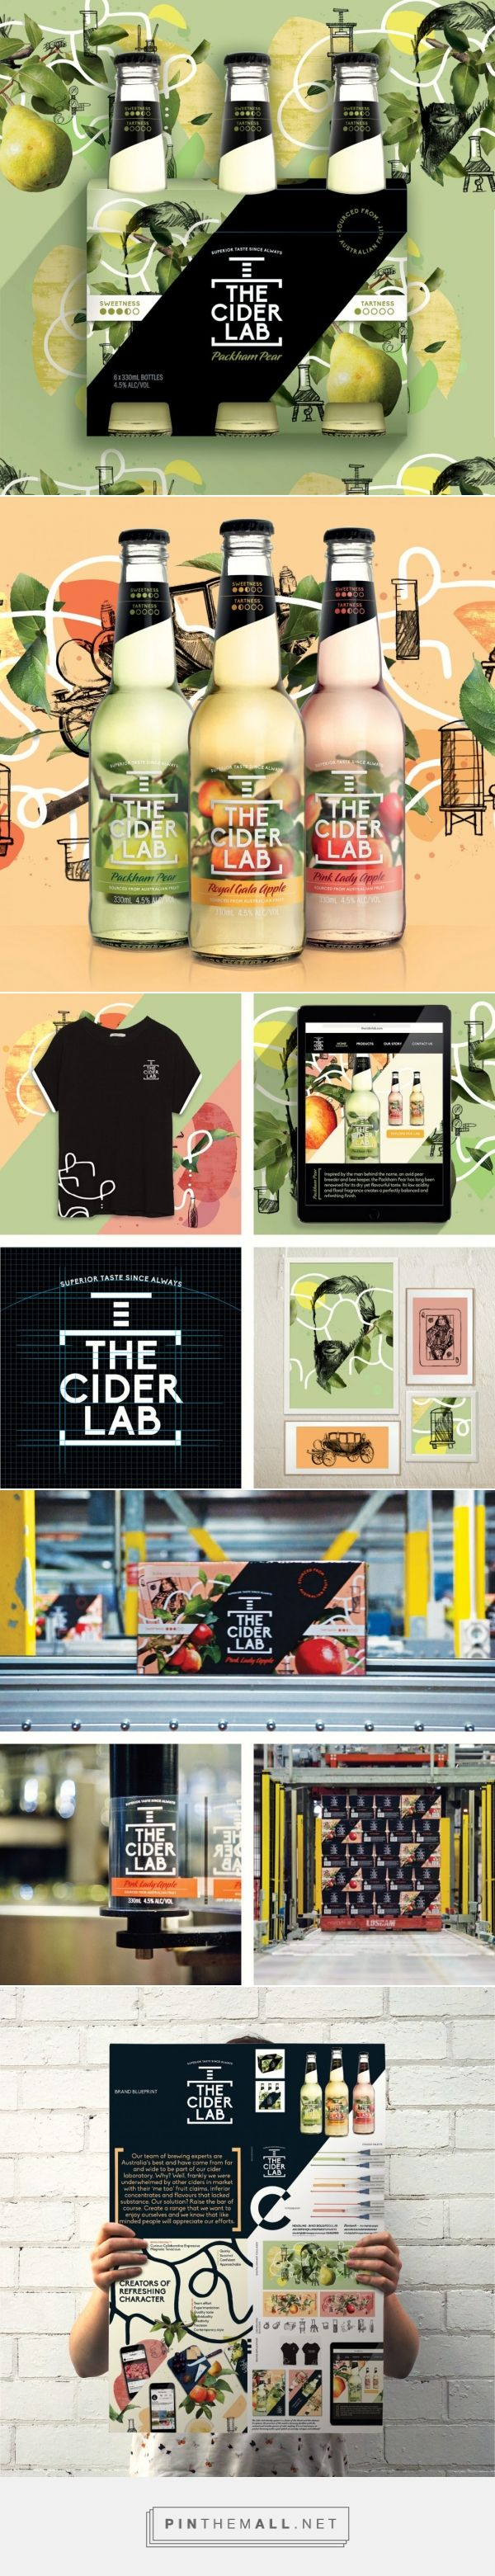 The Cider Lab Beverage Branding and Packaging by Bonney Creative | Fivestar Branding Agency – Design and Branding Agency & Curated Inspiration Gallery